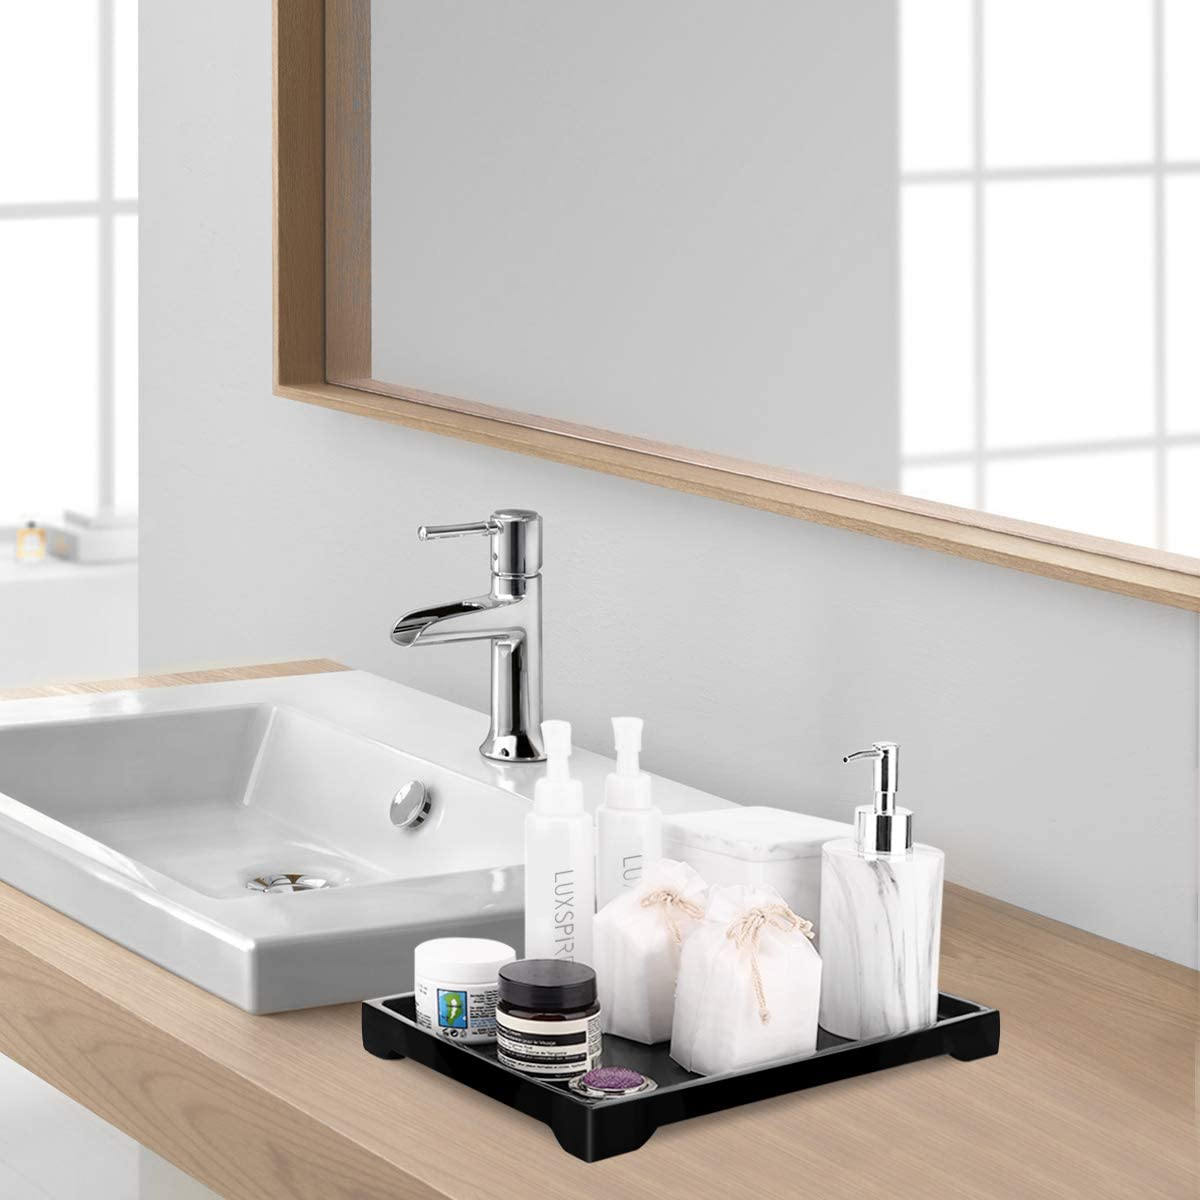 Plant Candles Vanity Organizer Rectangular Resin Tray Plate for Tissues Luxspire Toilet Tank Storage Tray Black Towel etc Soap